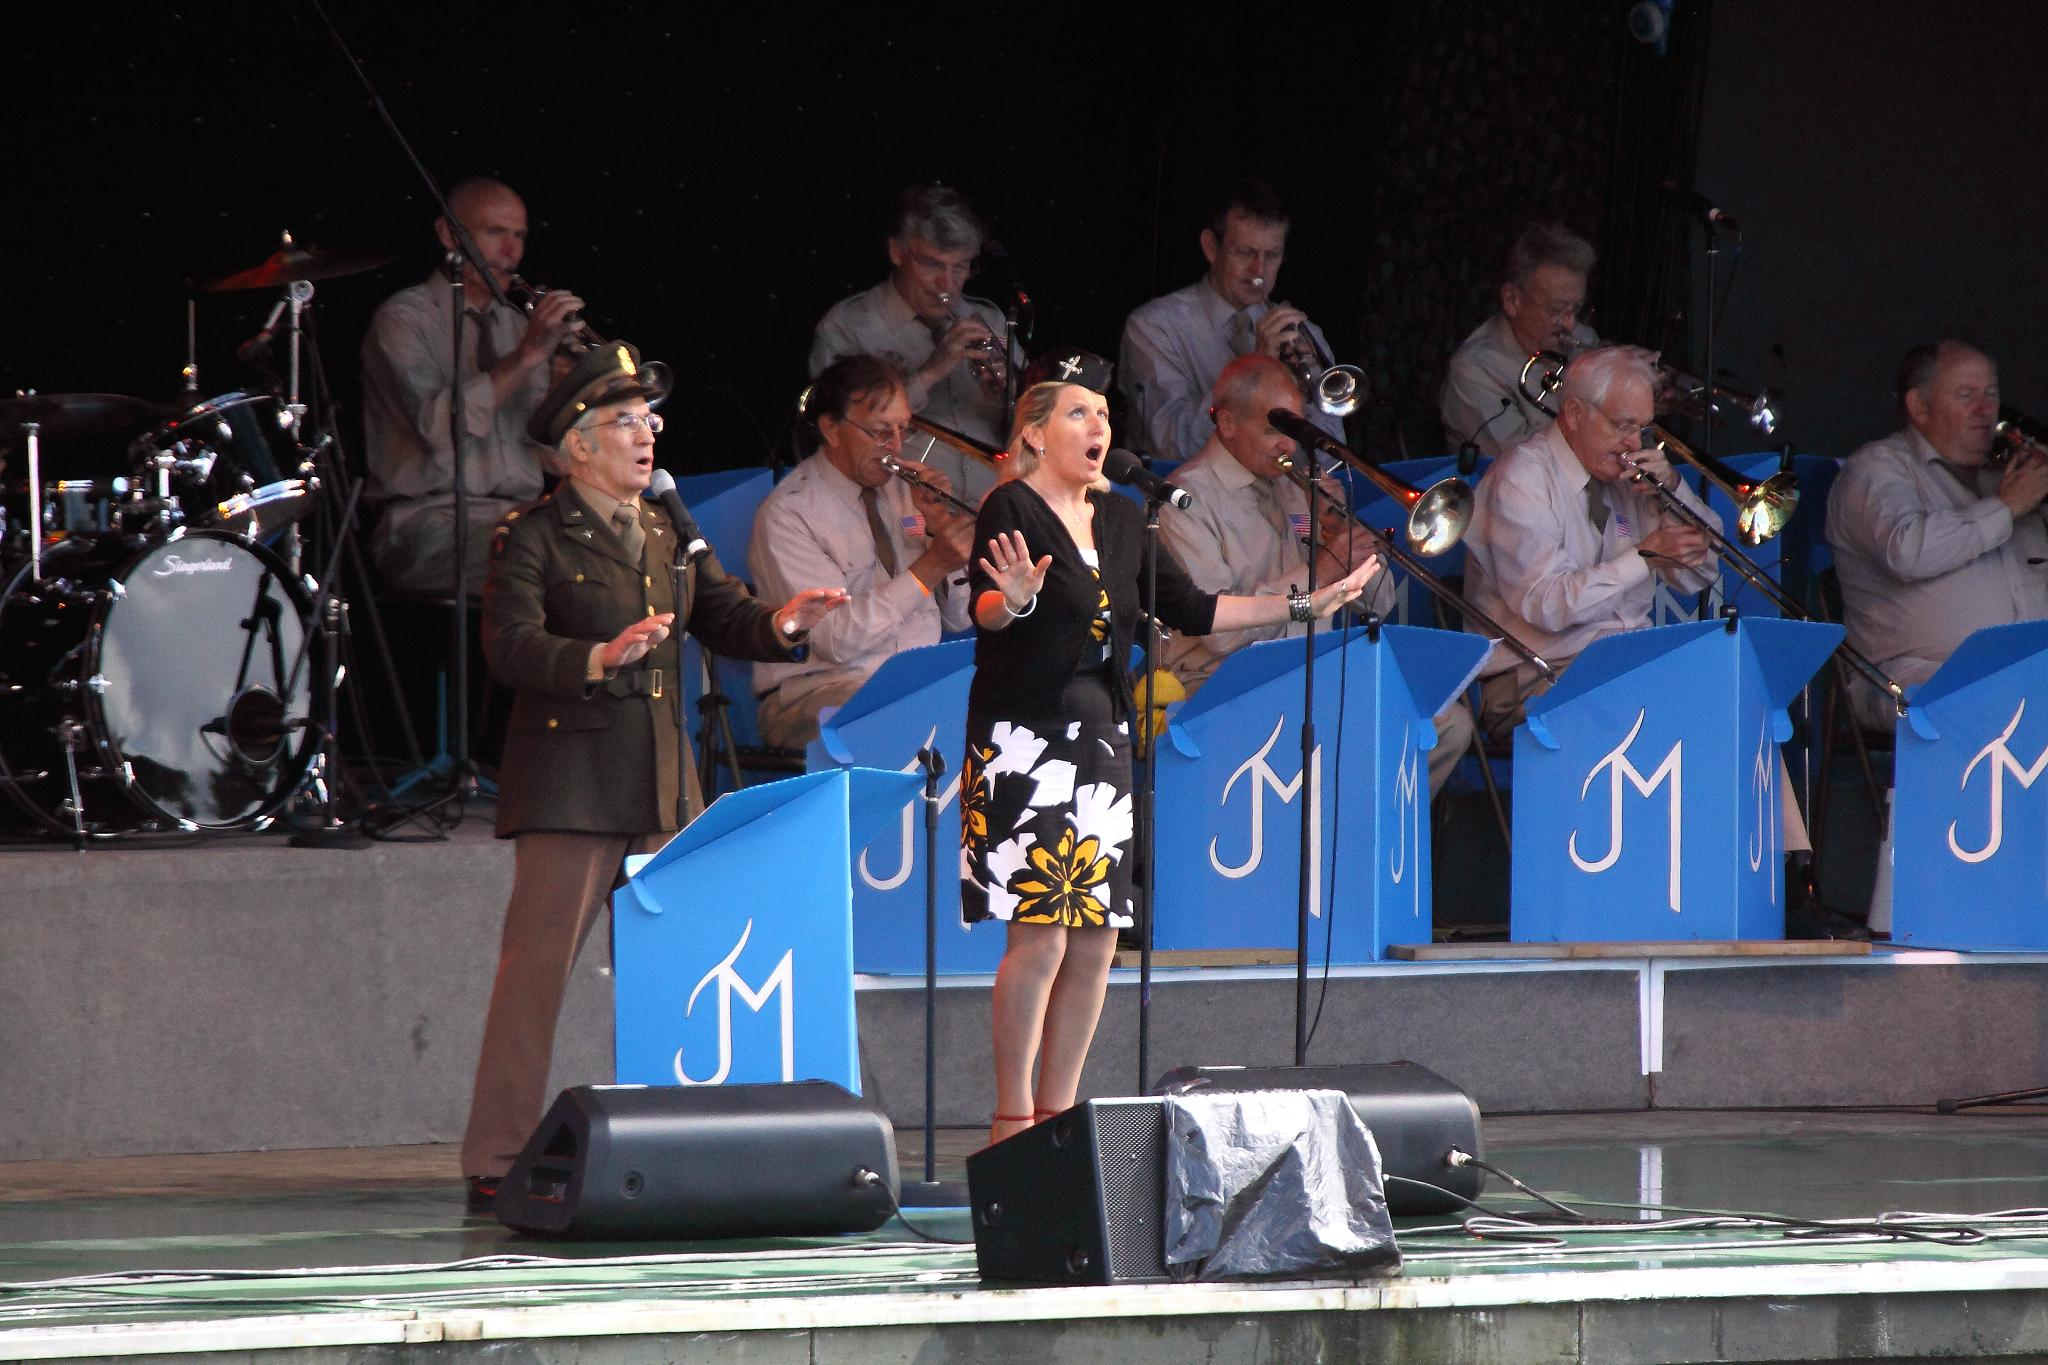 The John Miller Orchestra performing at 2010 Twinwood. Image from Wikimedia Commons.